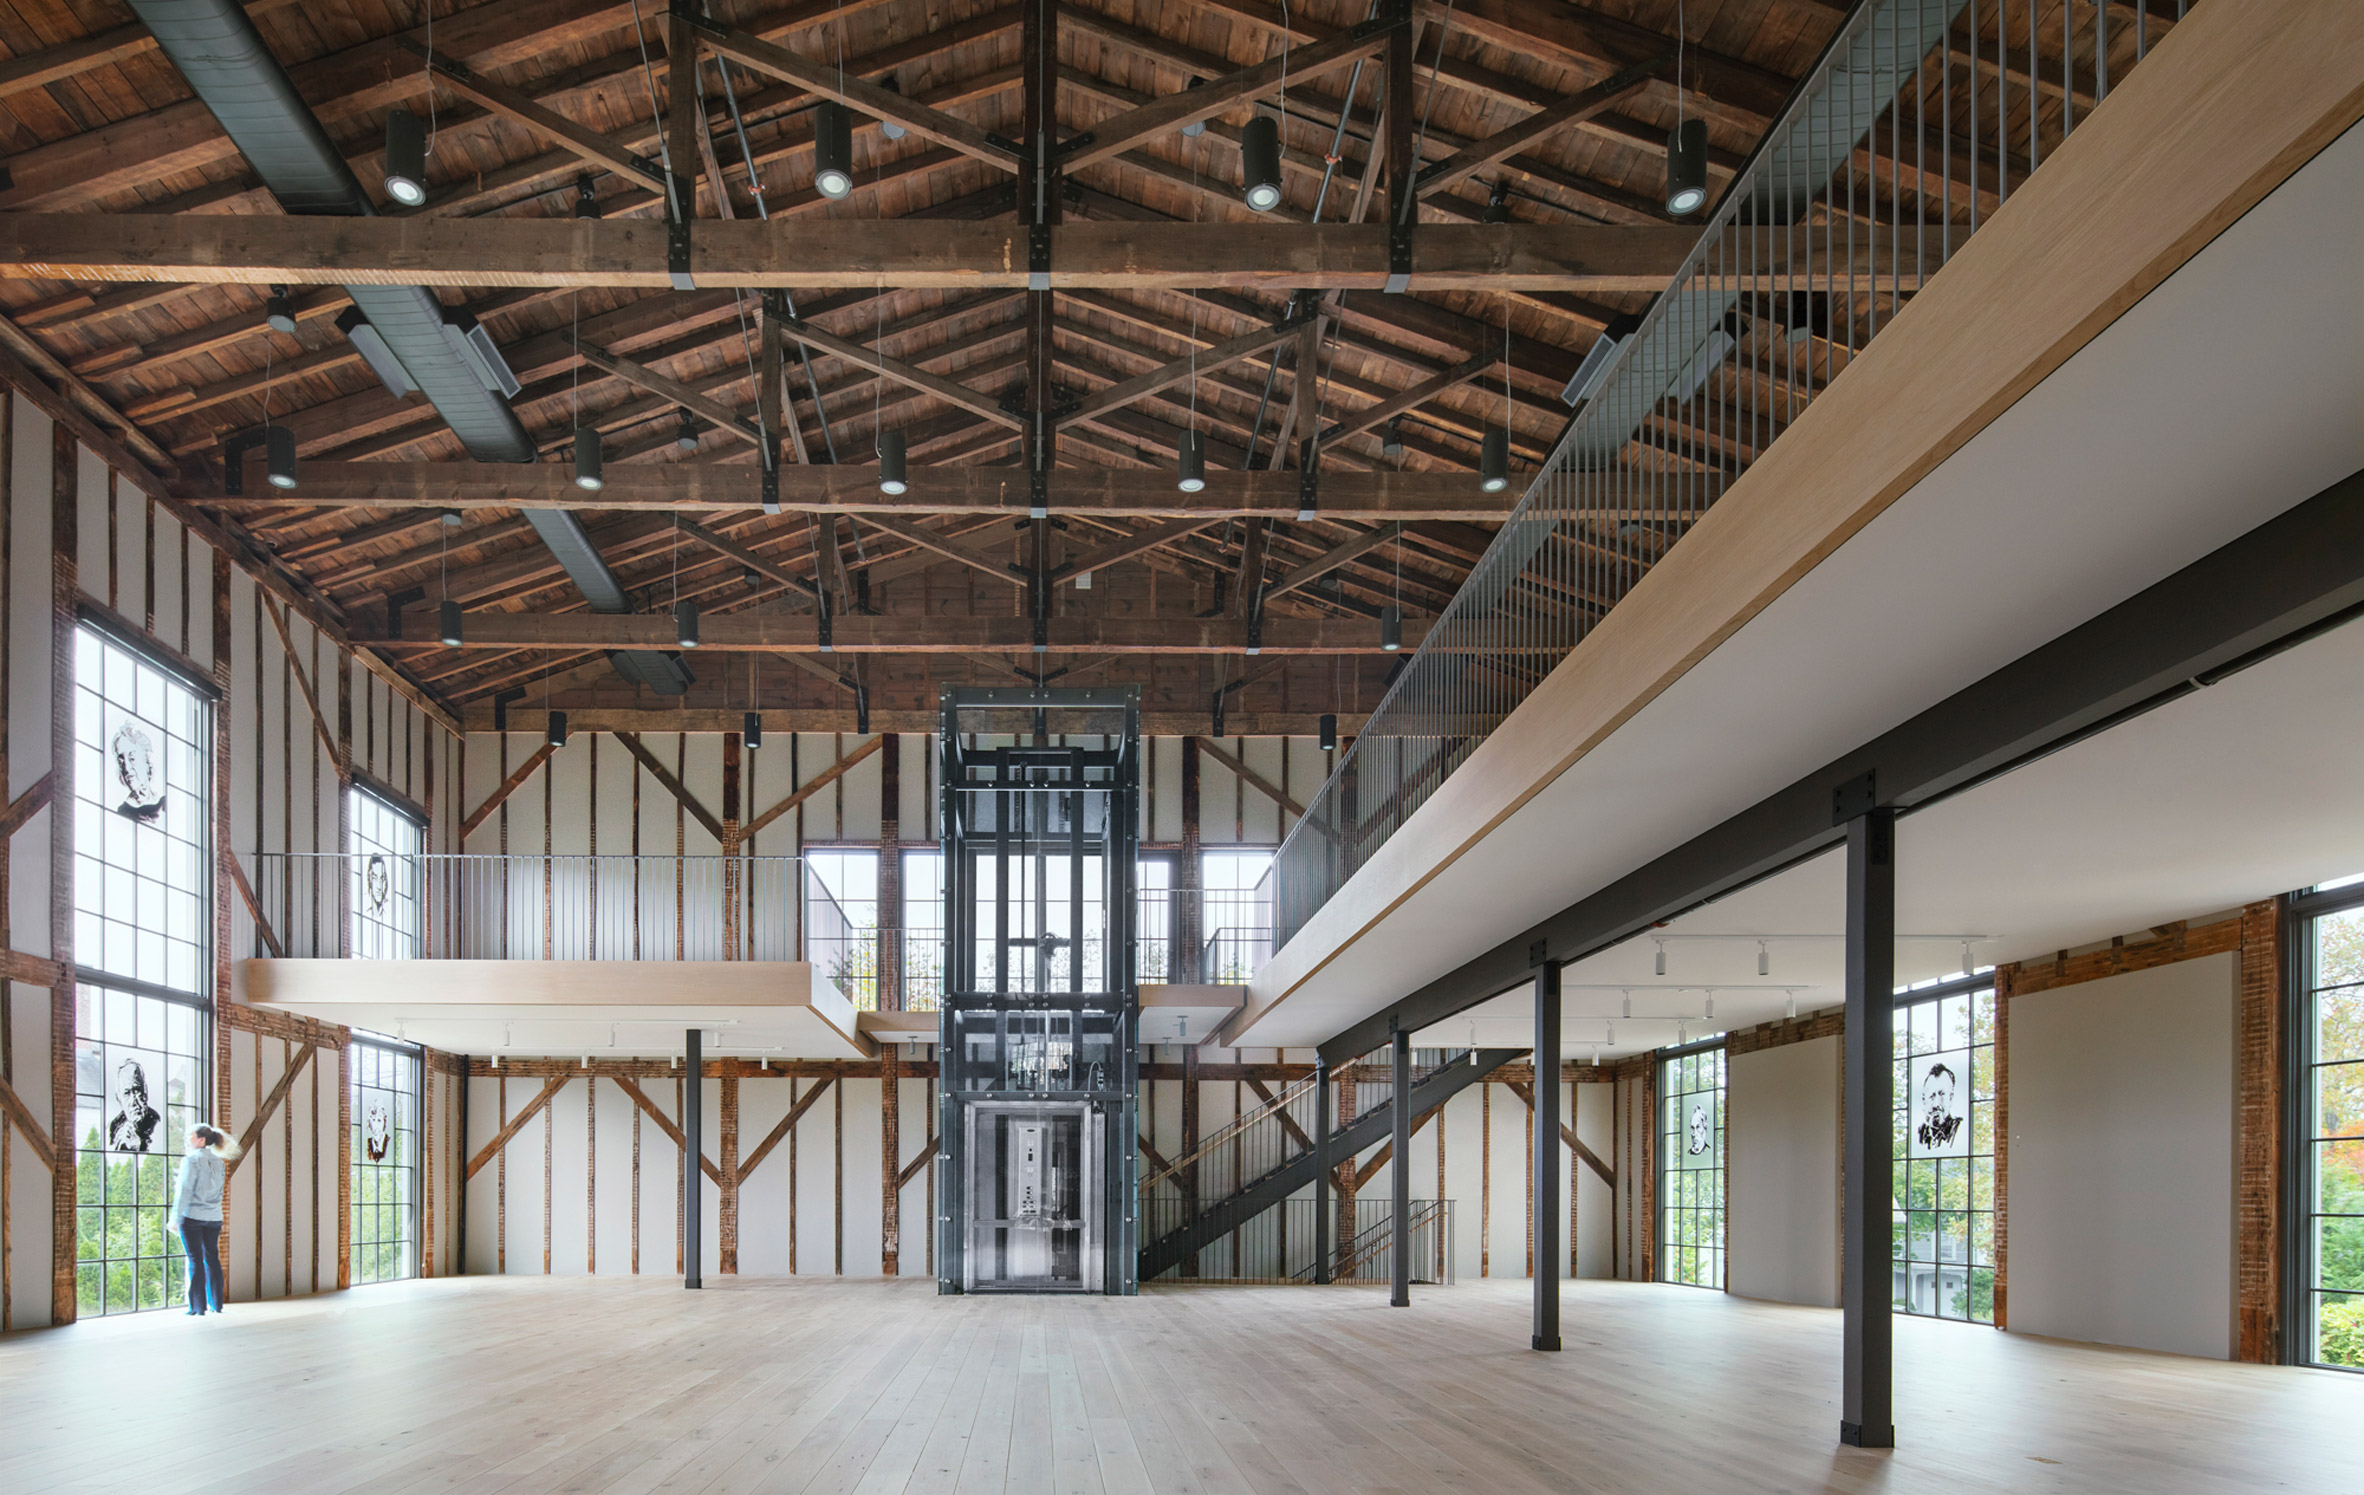 Interior of church conversion by Skolnick Architecture and Design Partnership